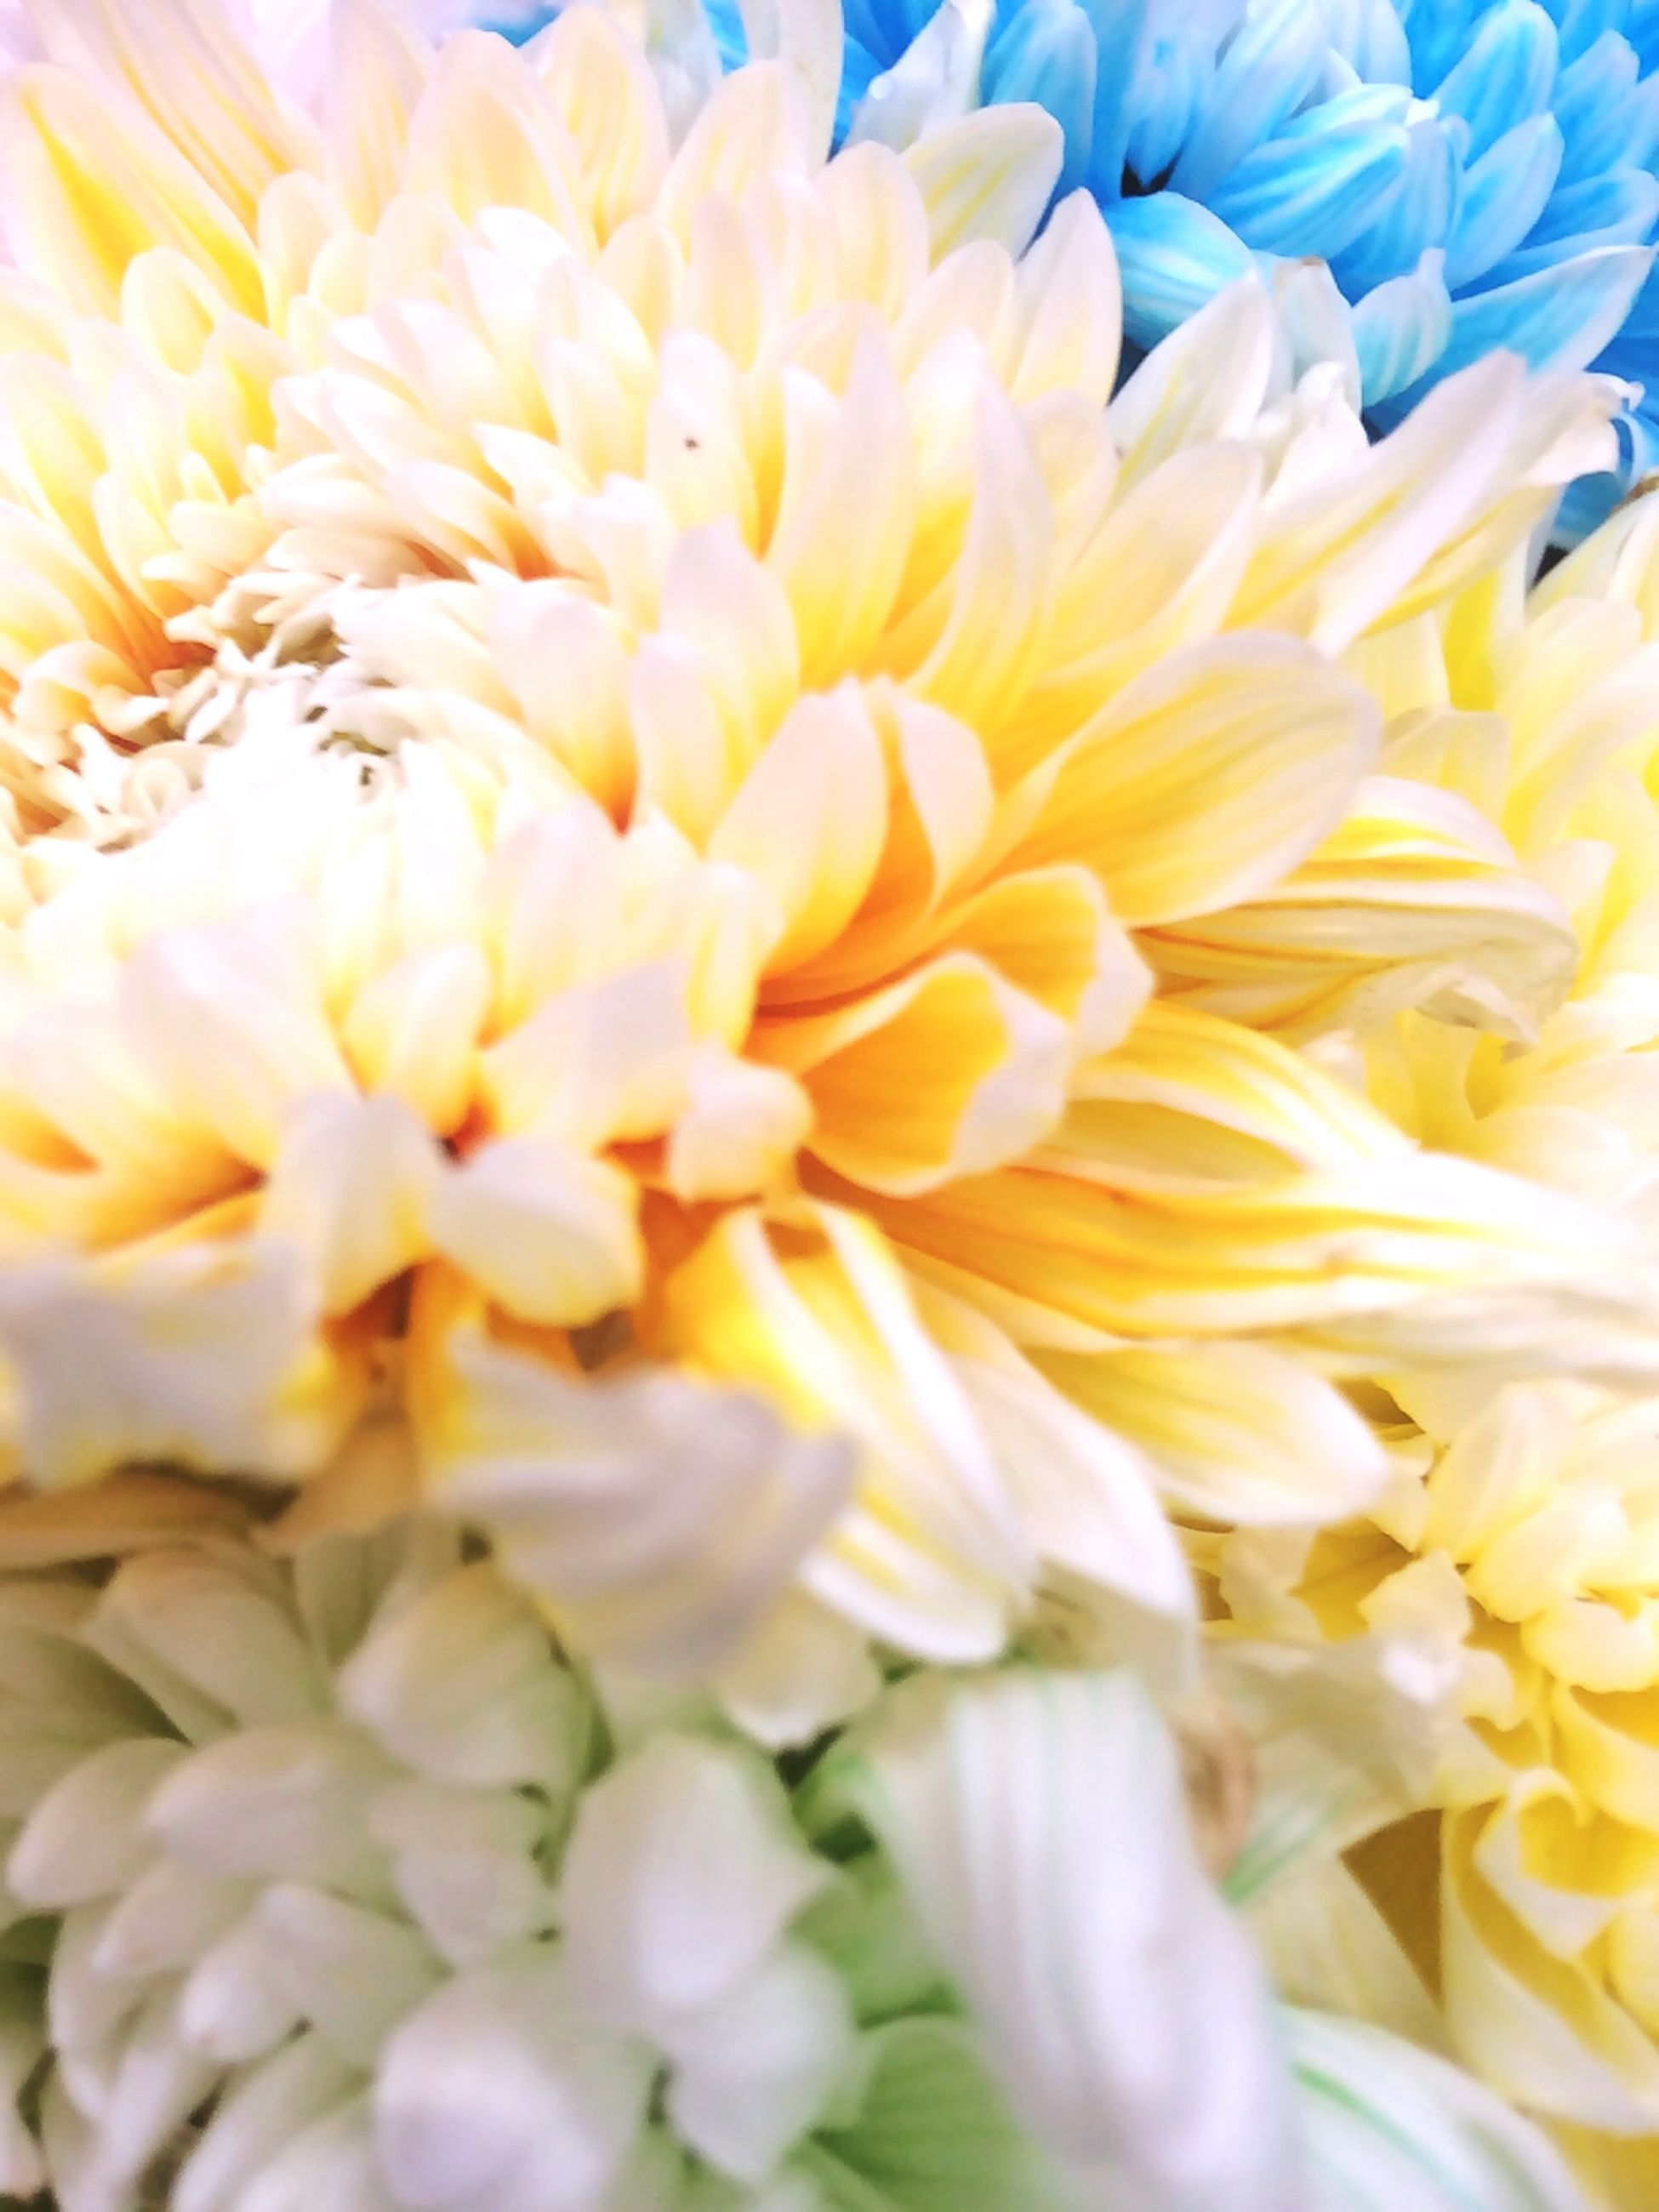 flower, petal, flower head, freshness, full frame, yellow, fragility, backgrounds, beauty in nature, close-up, nature, blooming, growth, pollen, detail, indoors, no people, softness, natural pattern, white color